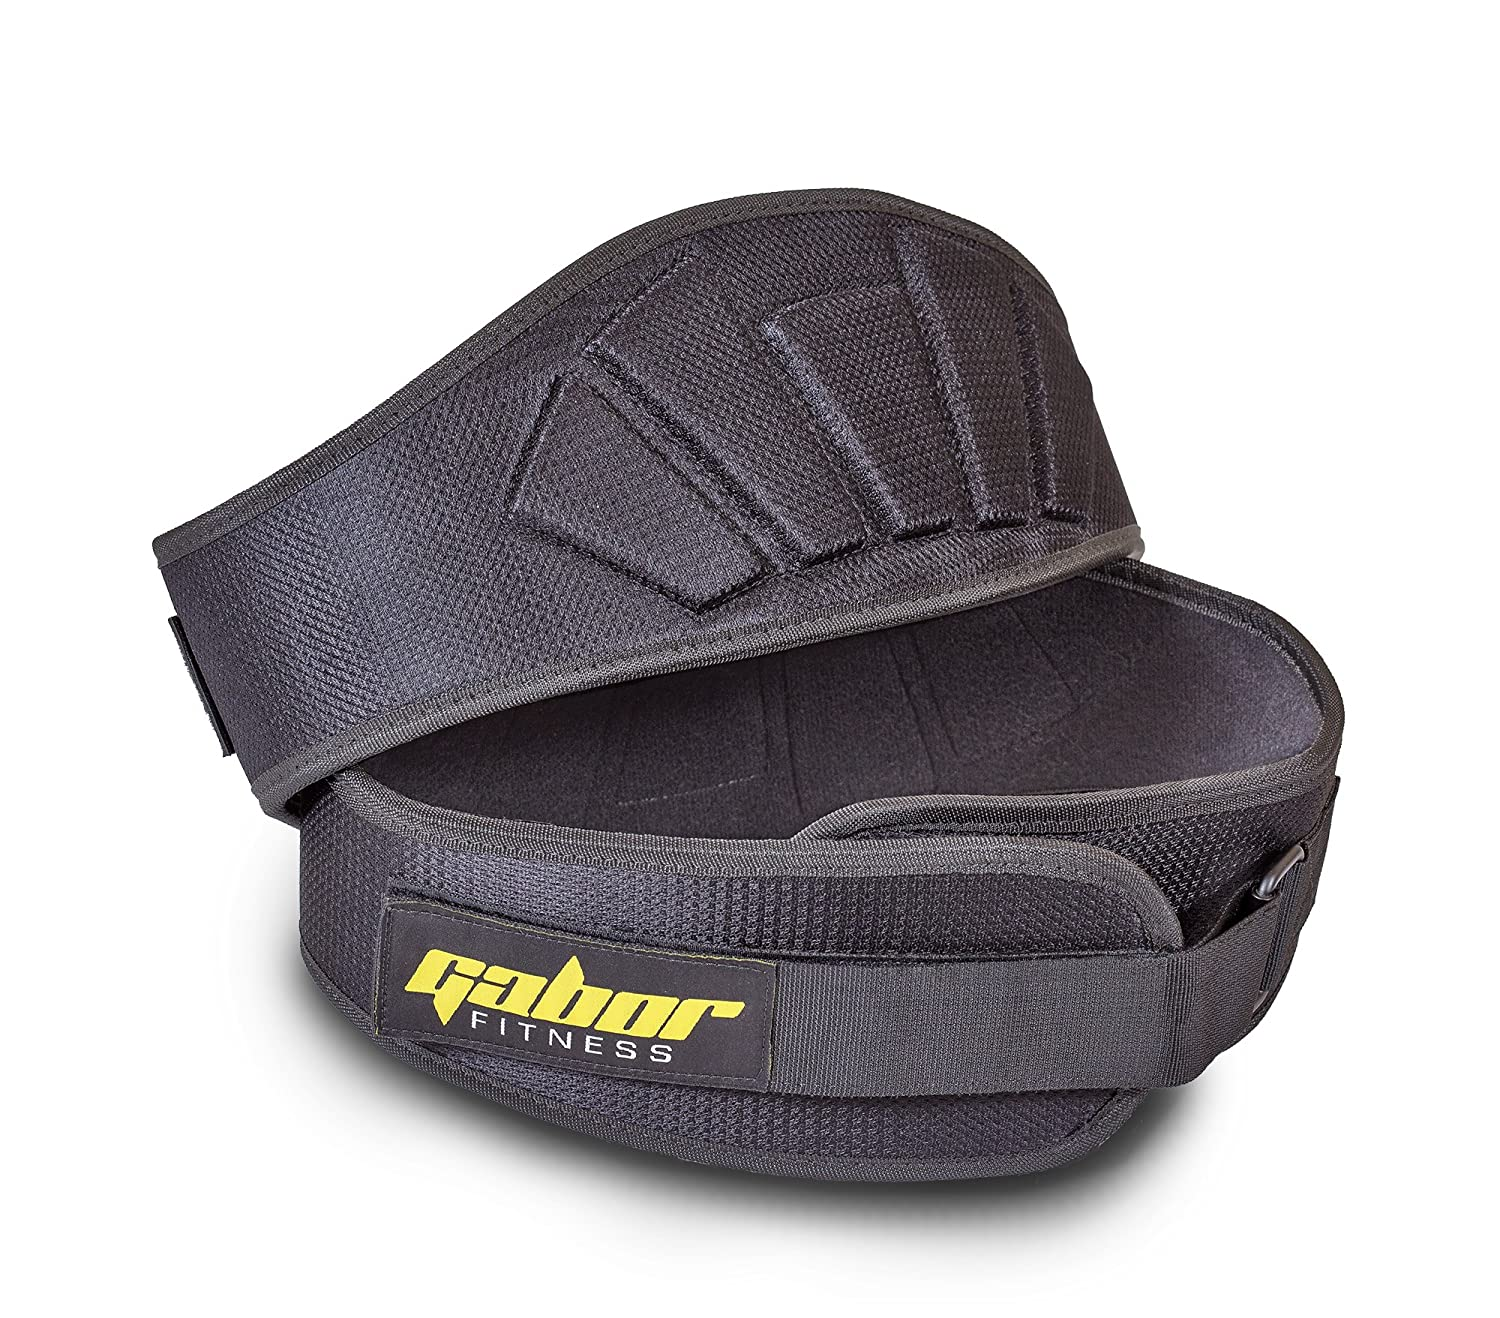 #4. Gabor Fitness Contoured Neoprene Back Support Weight Lifting Belt